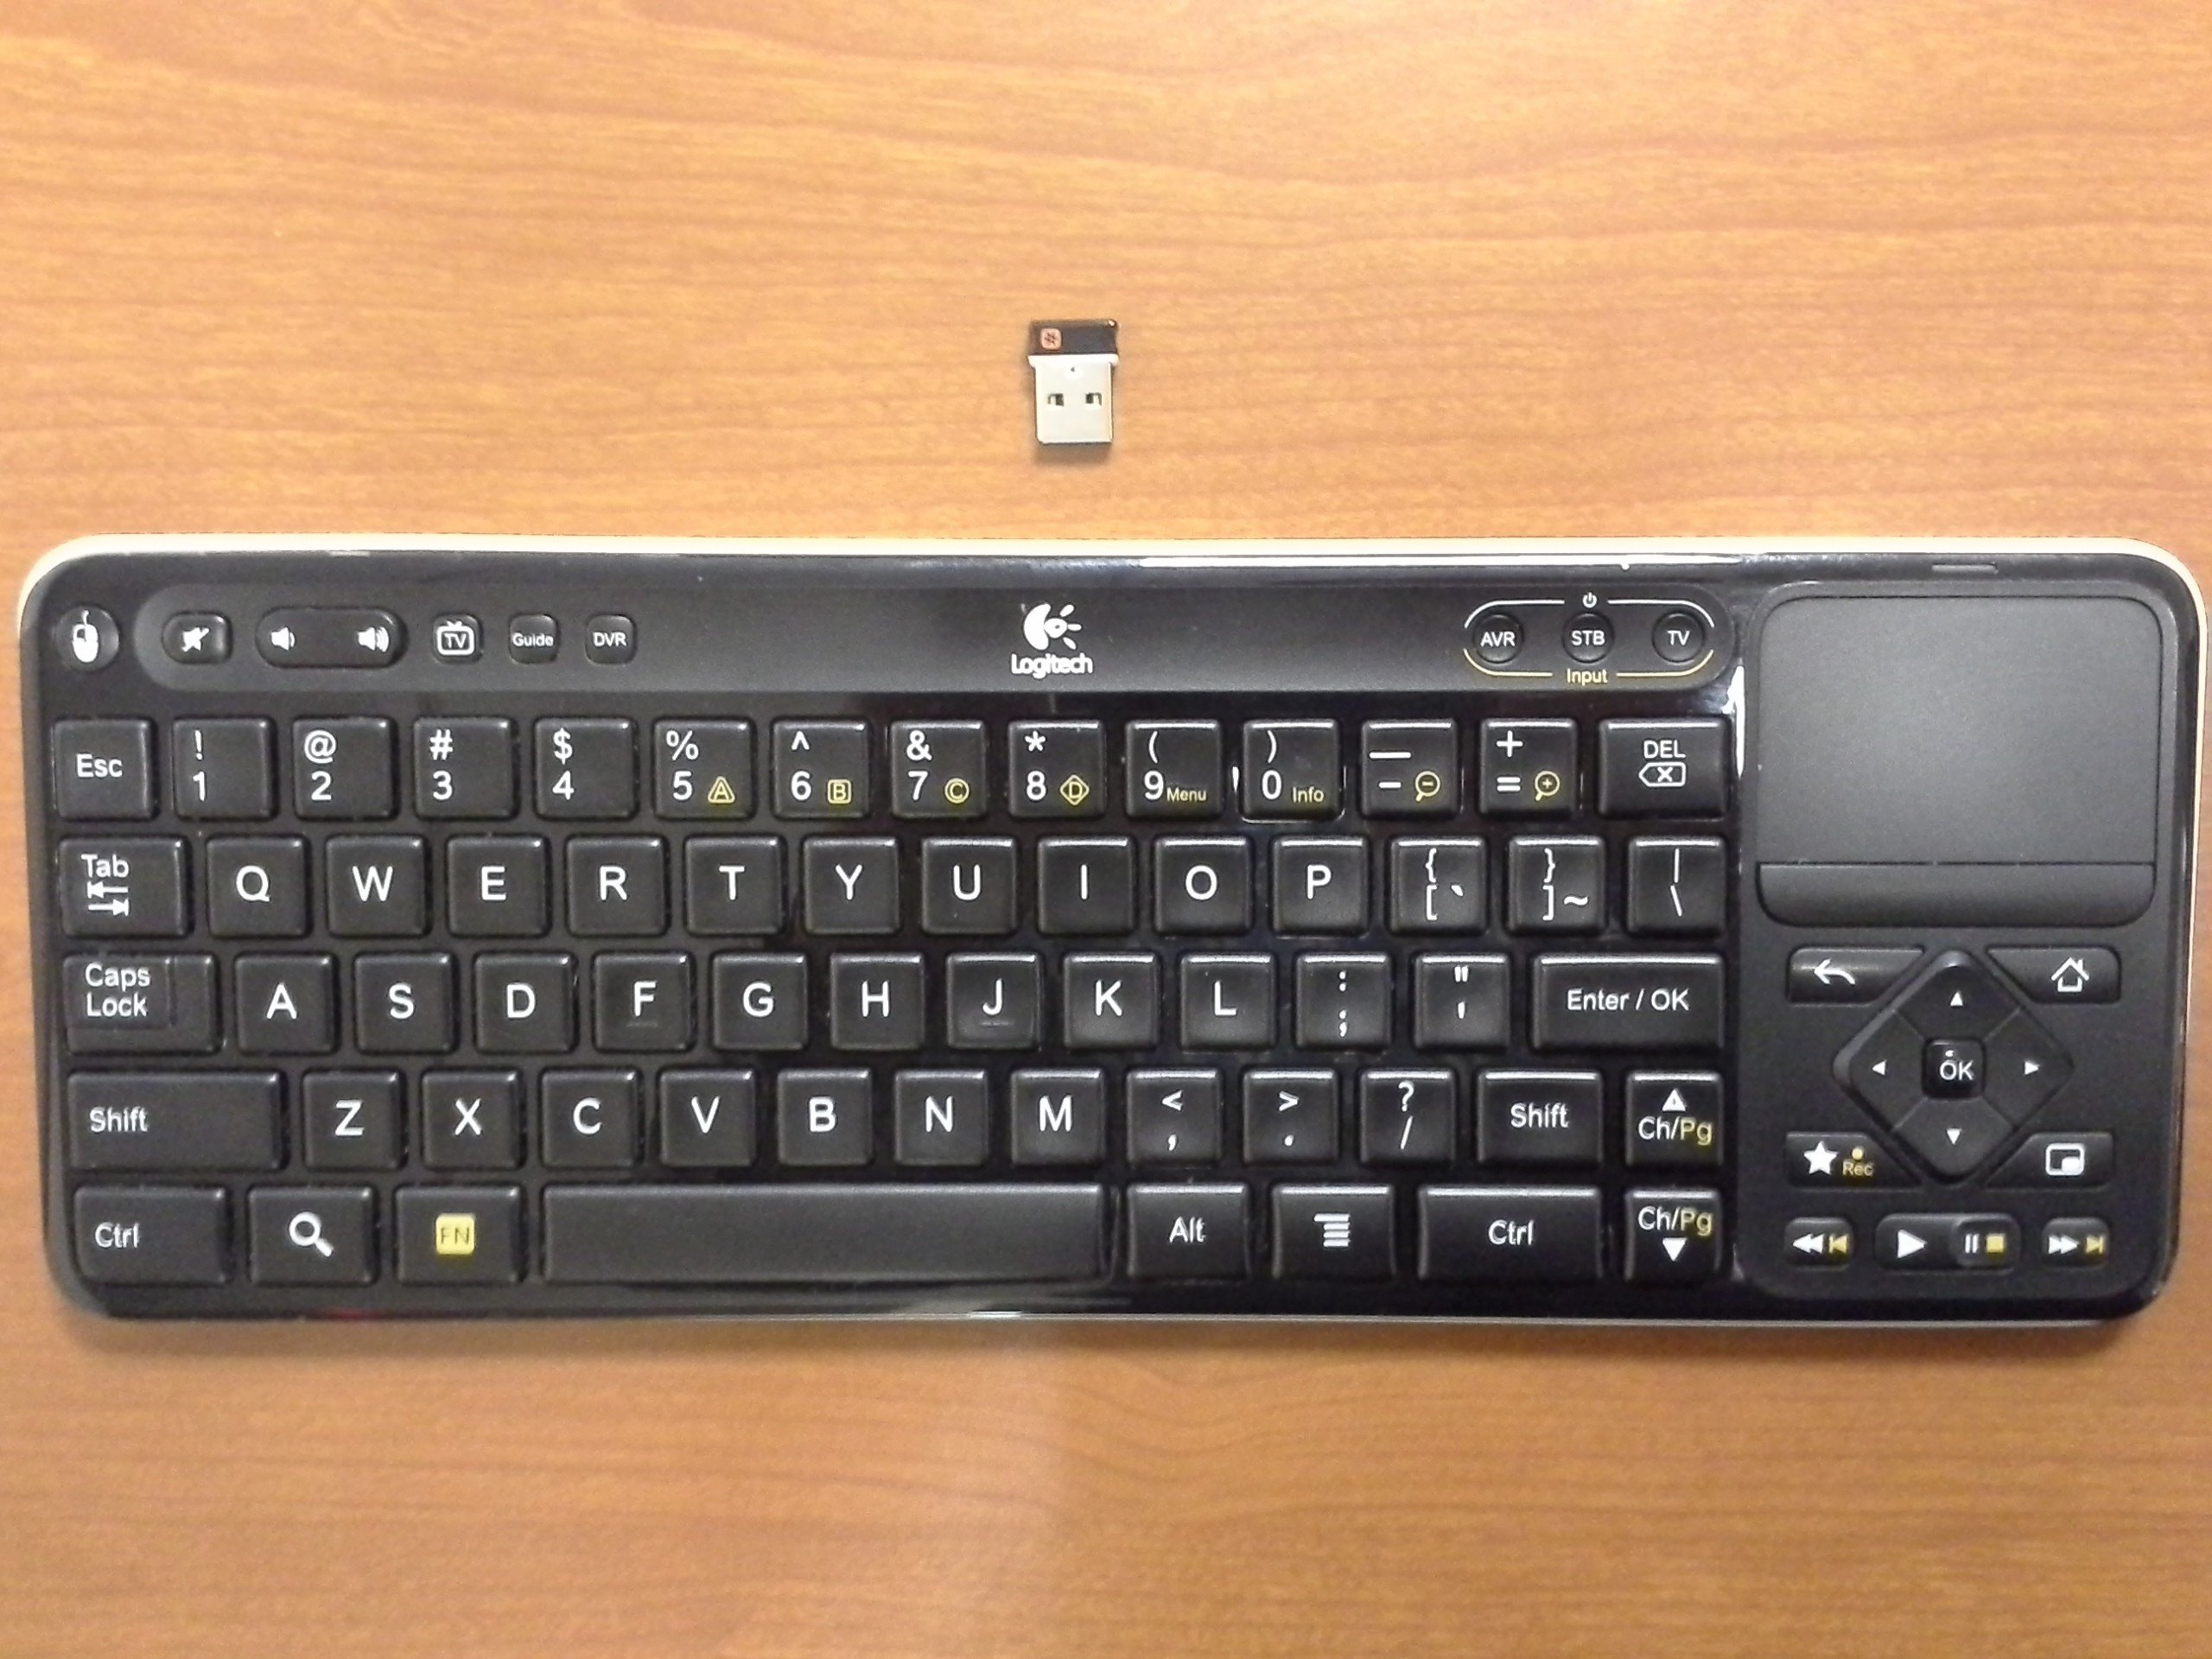 Logitech K700 Keyboard Teardown - iFixit